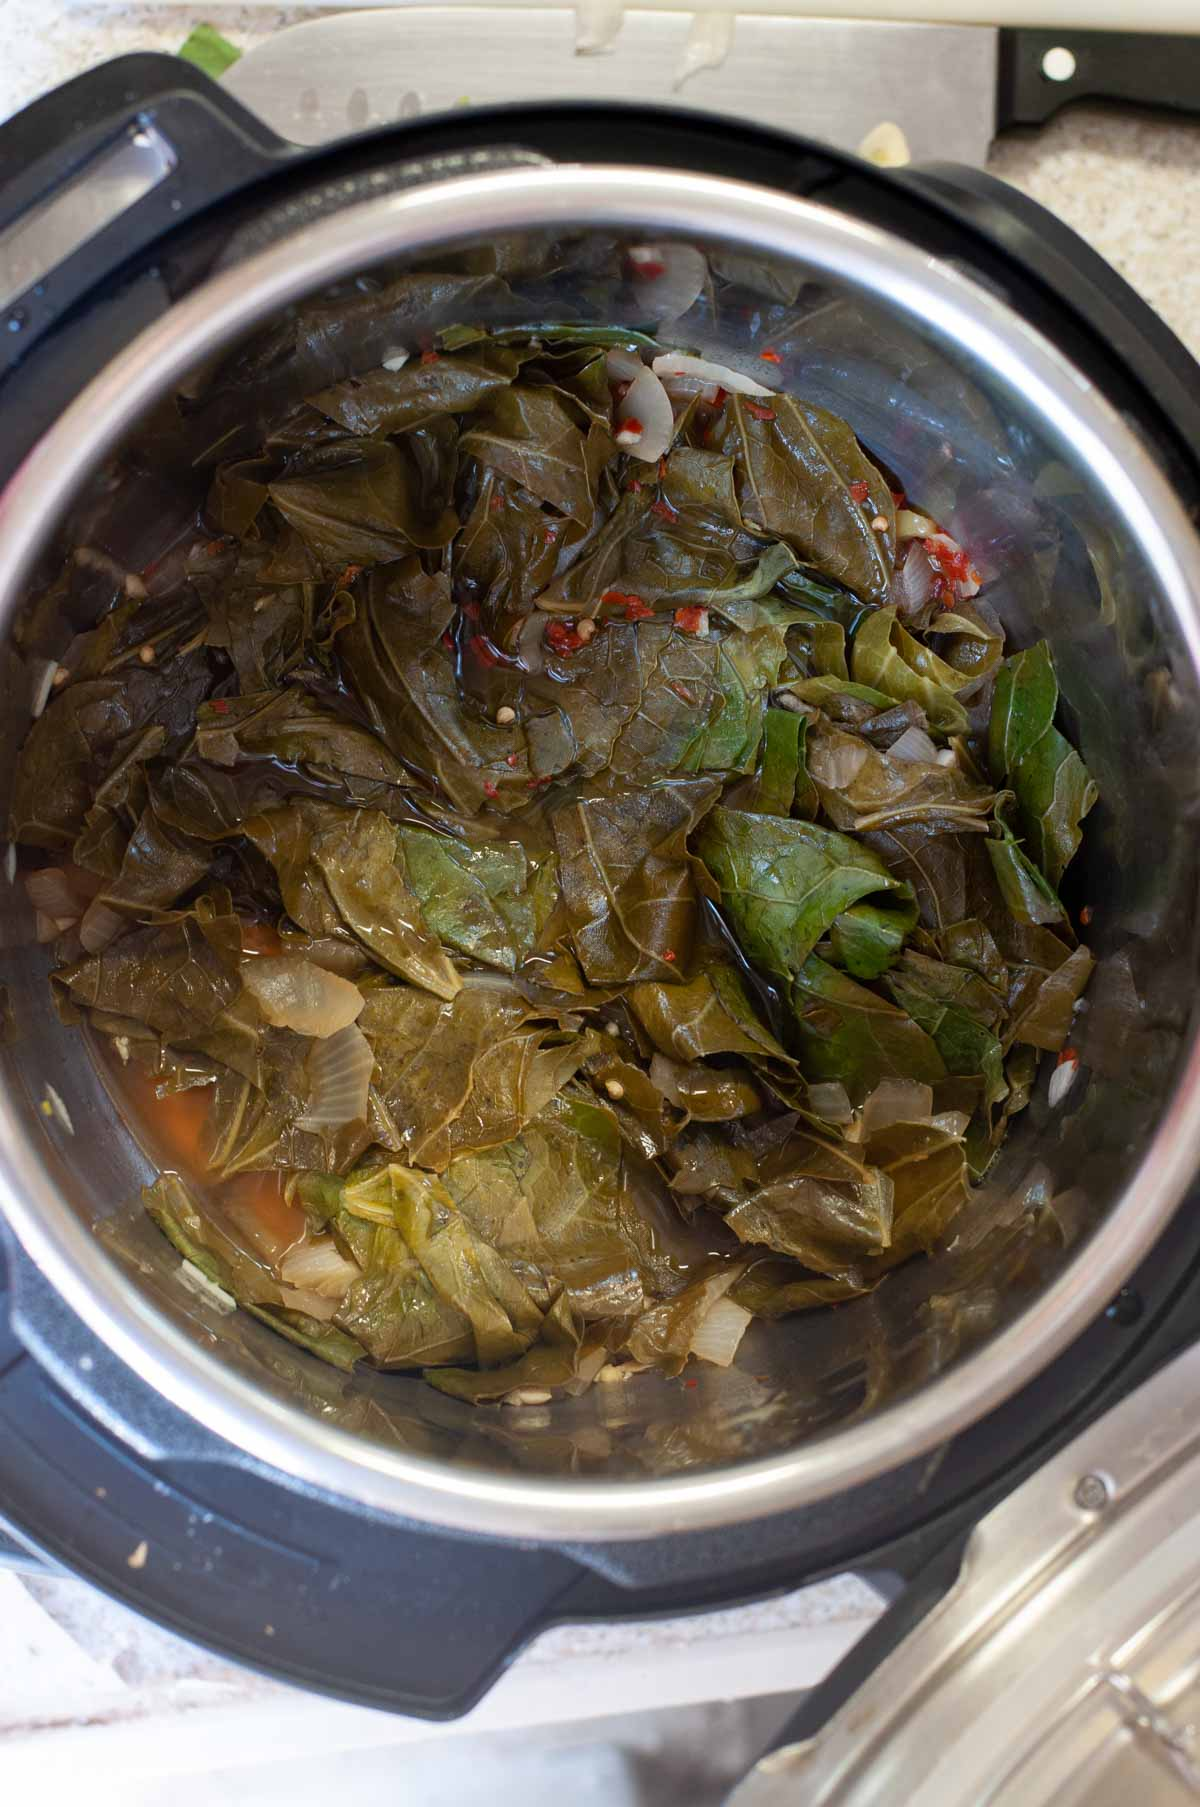 Instant Pot filled with cooked collard greens